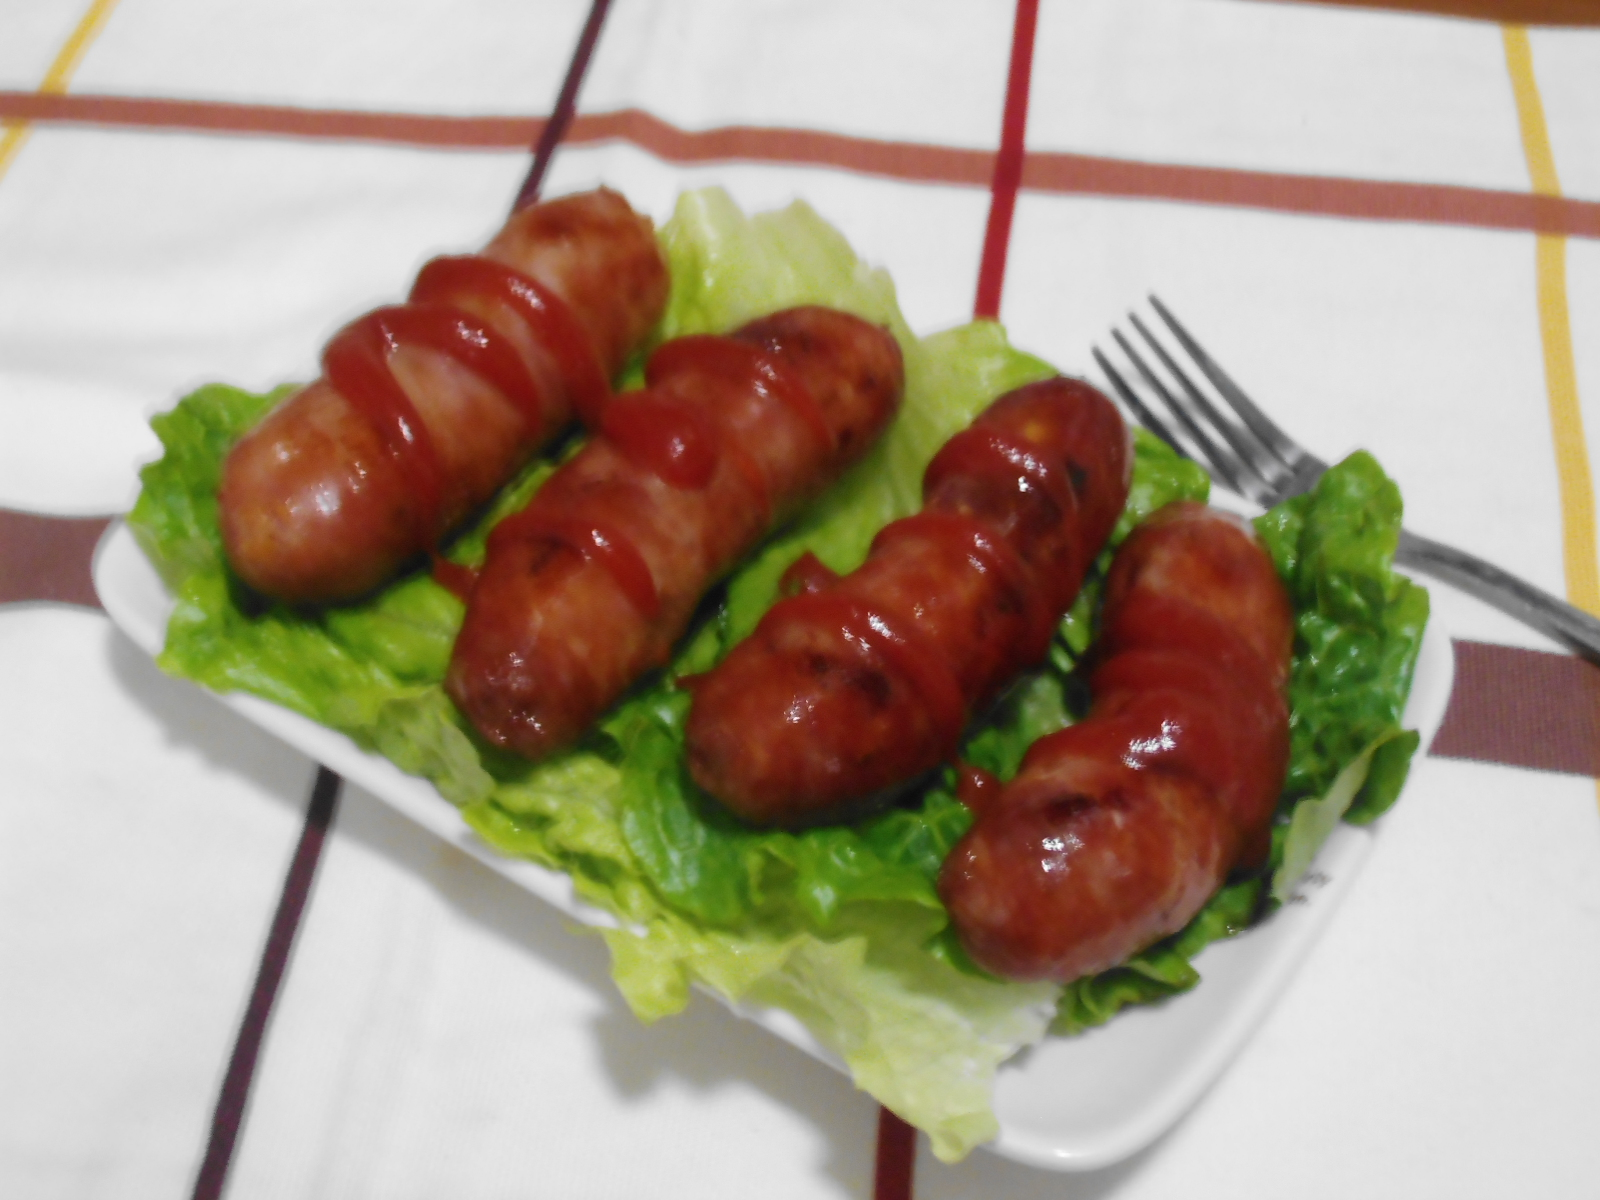 Baked sausages (Taiwan style).